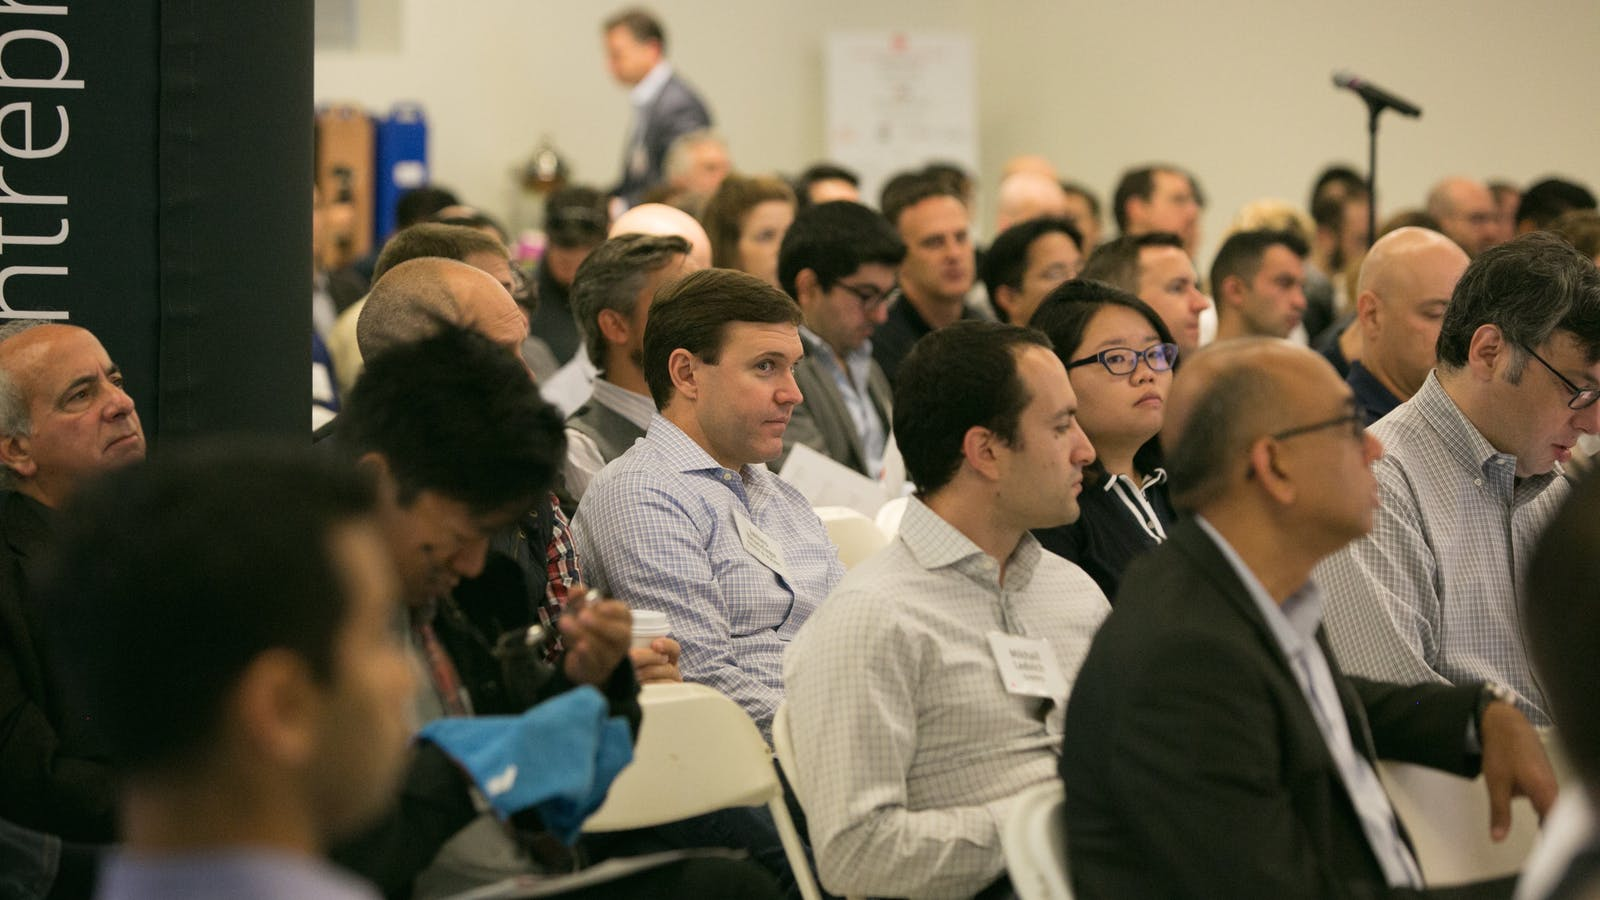 Attendees at Friday's Subscriber Summit in San Francisco. Photo by Julie Mikos.